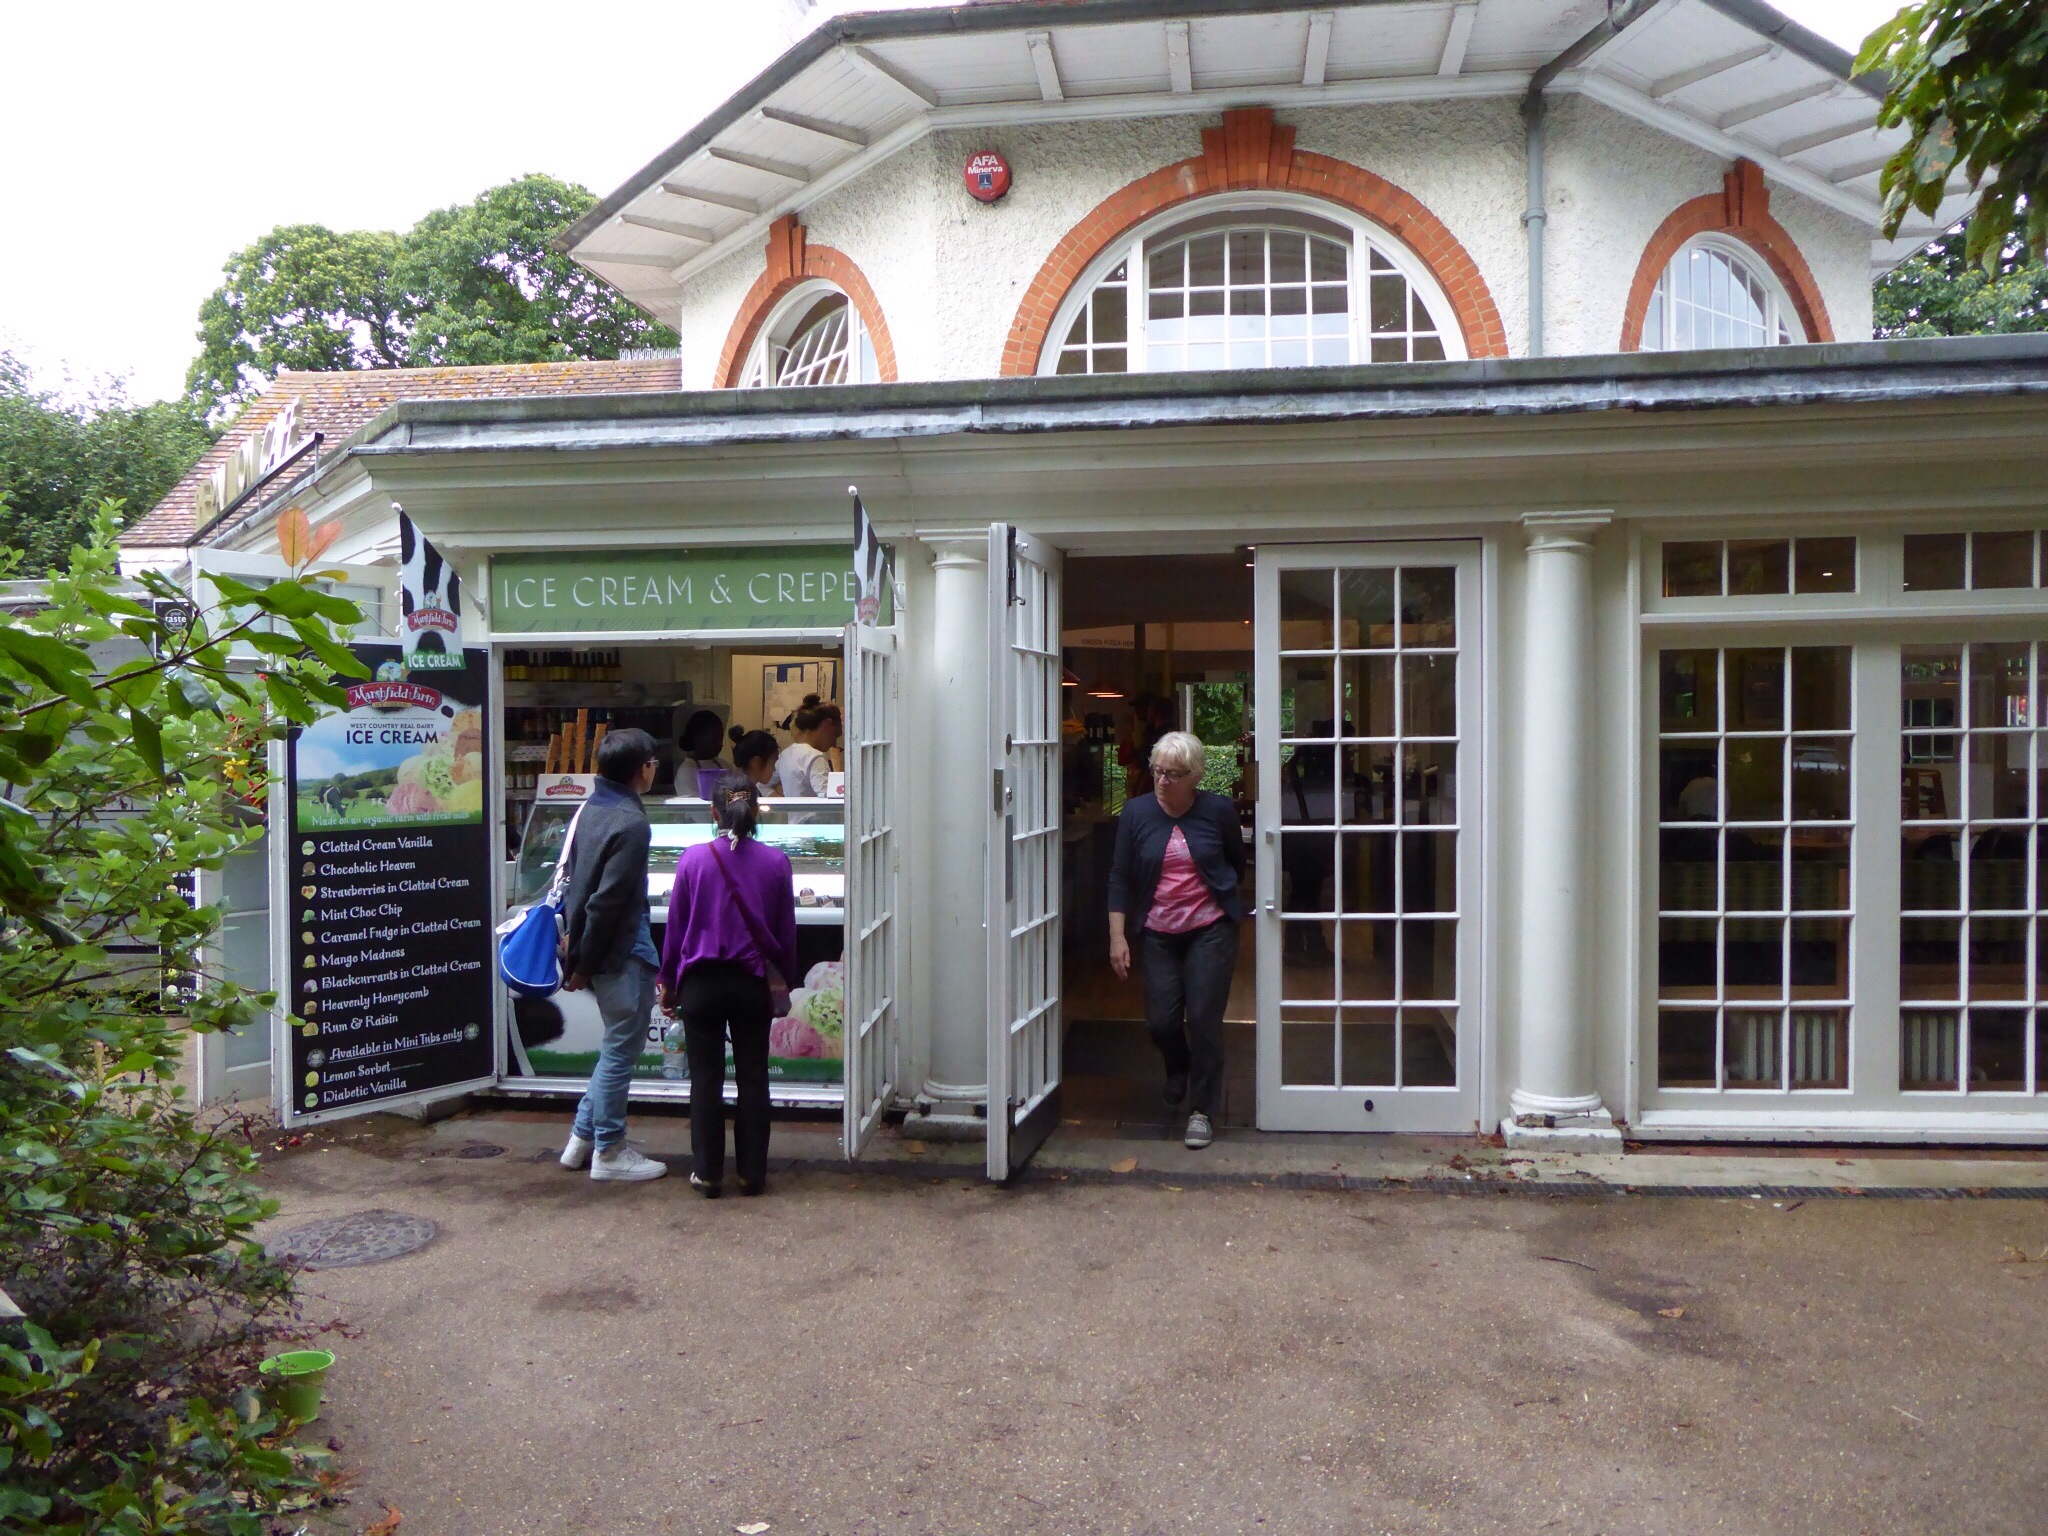 The ice cream shop at the Pavillion in Greenwich